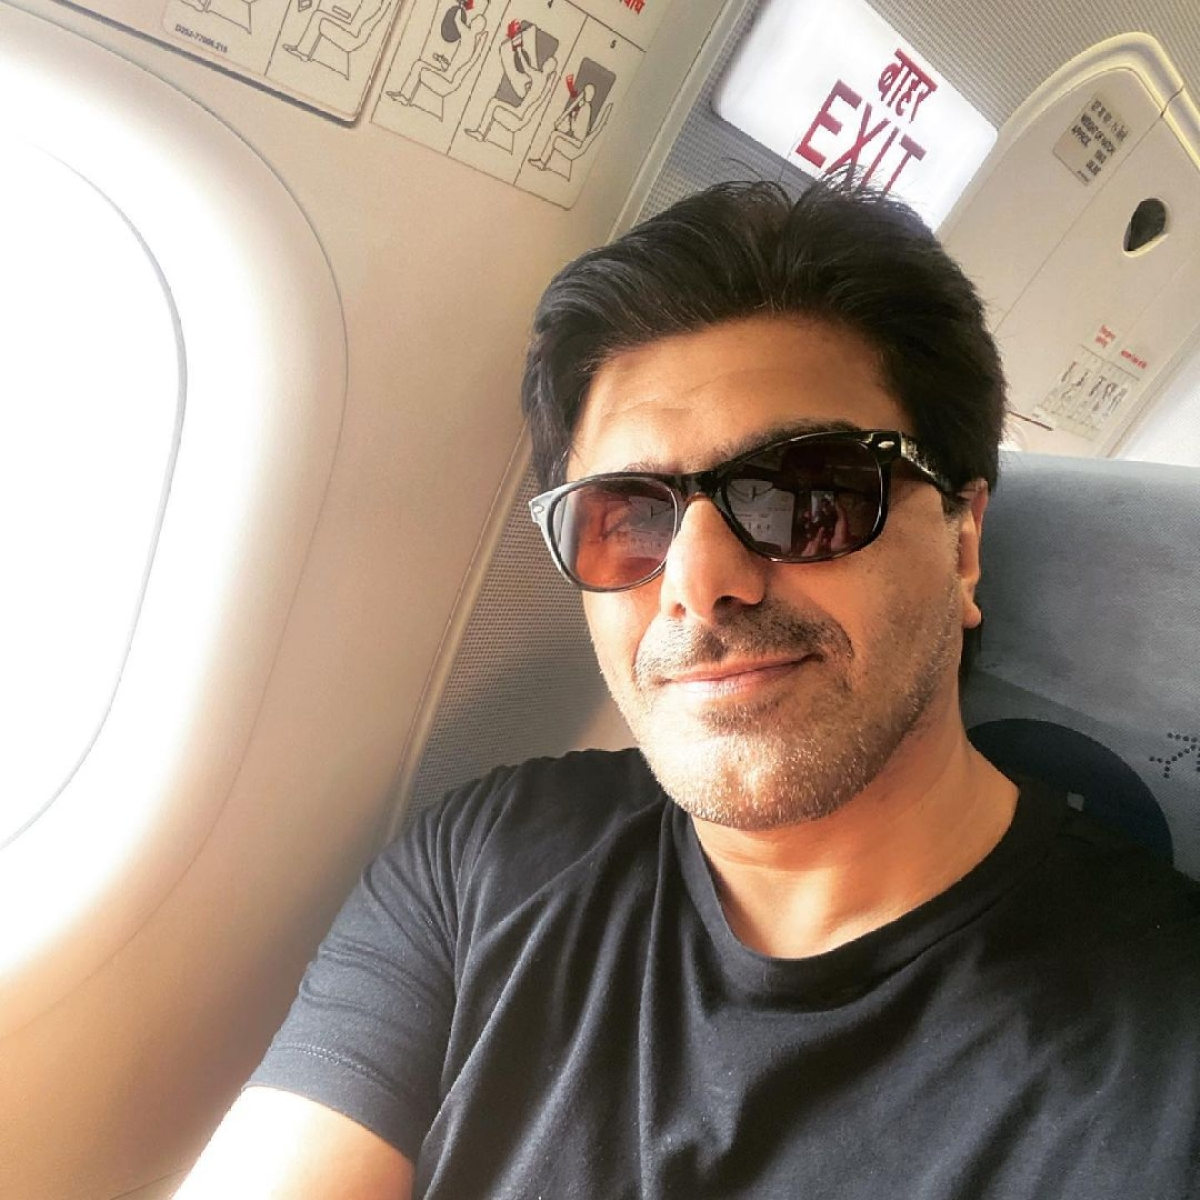 'Shame on all you misery porn peddlers': Samir Soni says he's 'fed up' of 'worldwide India bashing'